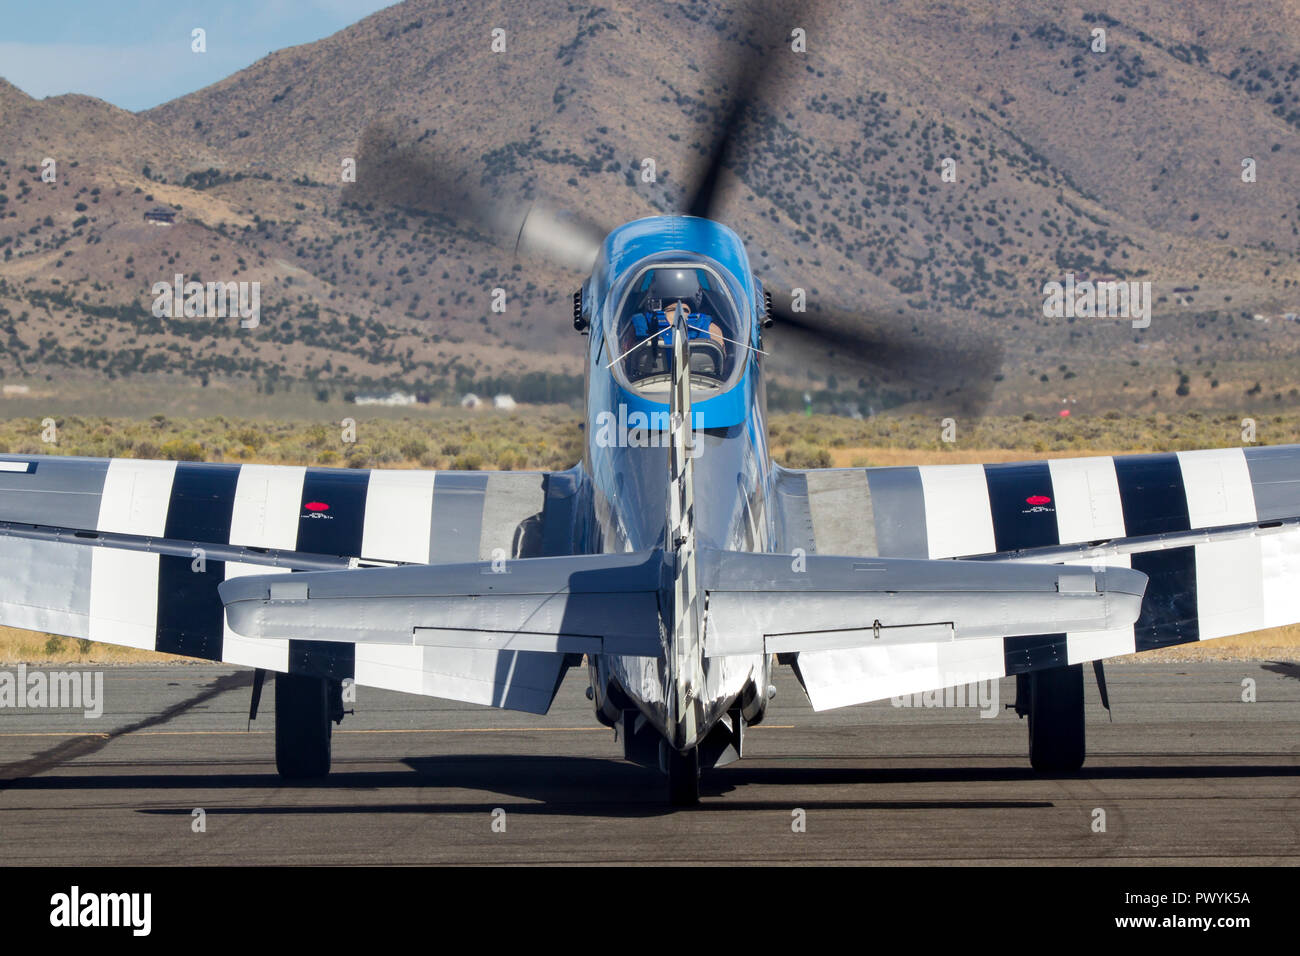 P-51 Mustang and Unlimited Air Racer 'Lady B' prepares to taxi on the ramp prior to a heat race at the 2018 Reno National Championship Air Races. - Stock Image